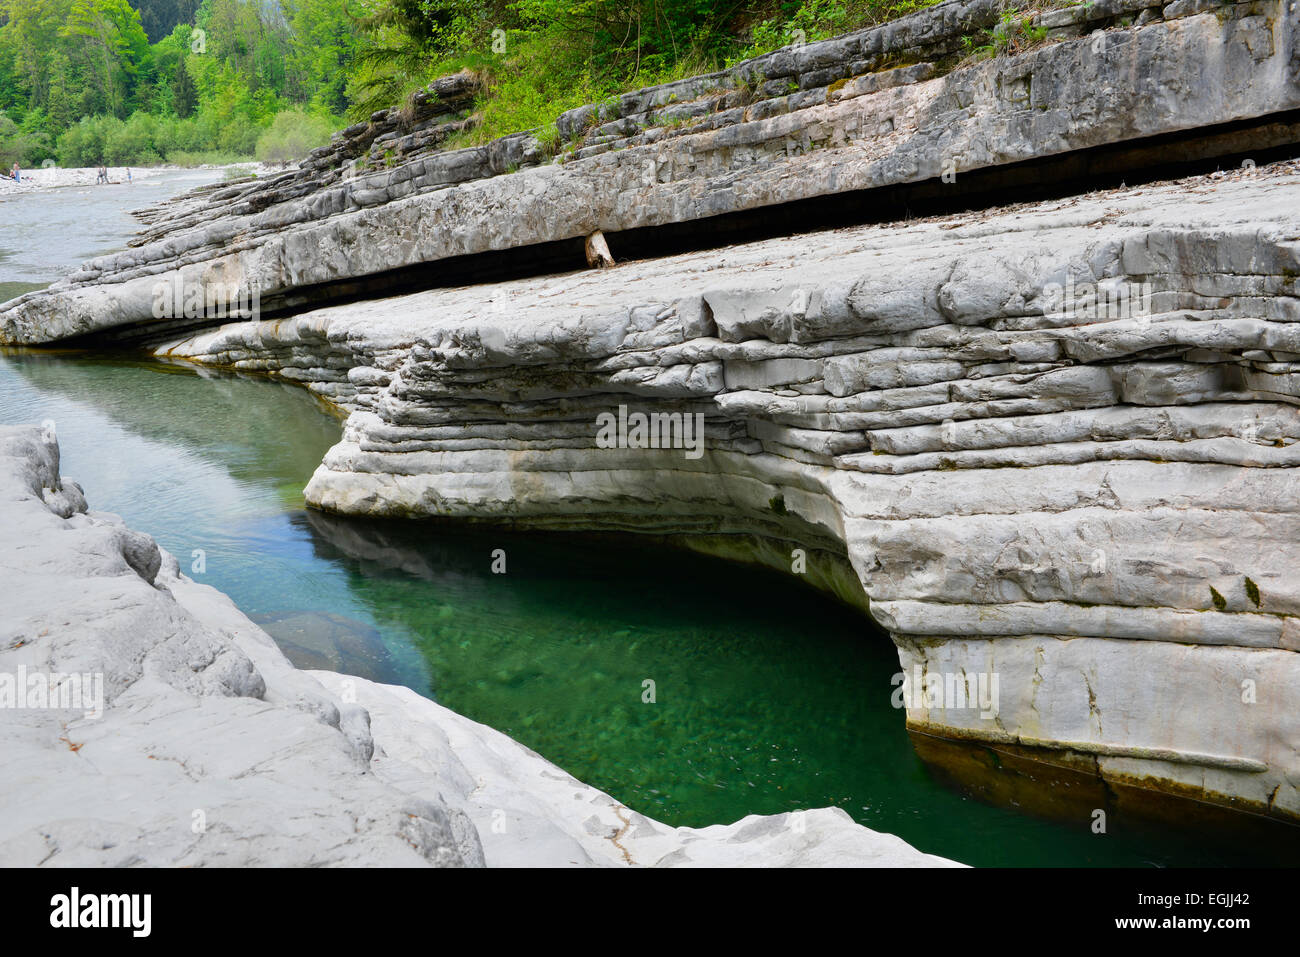 Taugl river, Tauglgries nature reserve, Bad Vigaun, Hallein District, Salzburg, Austria Stock Photo